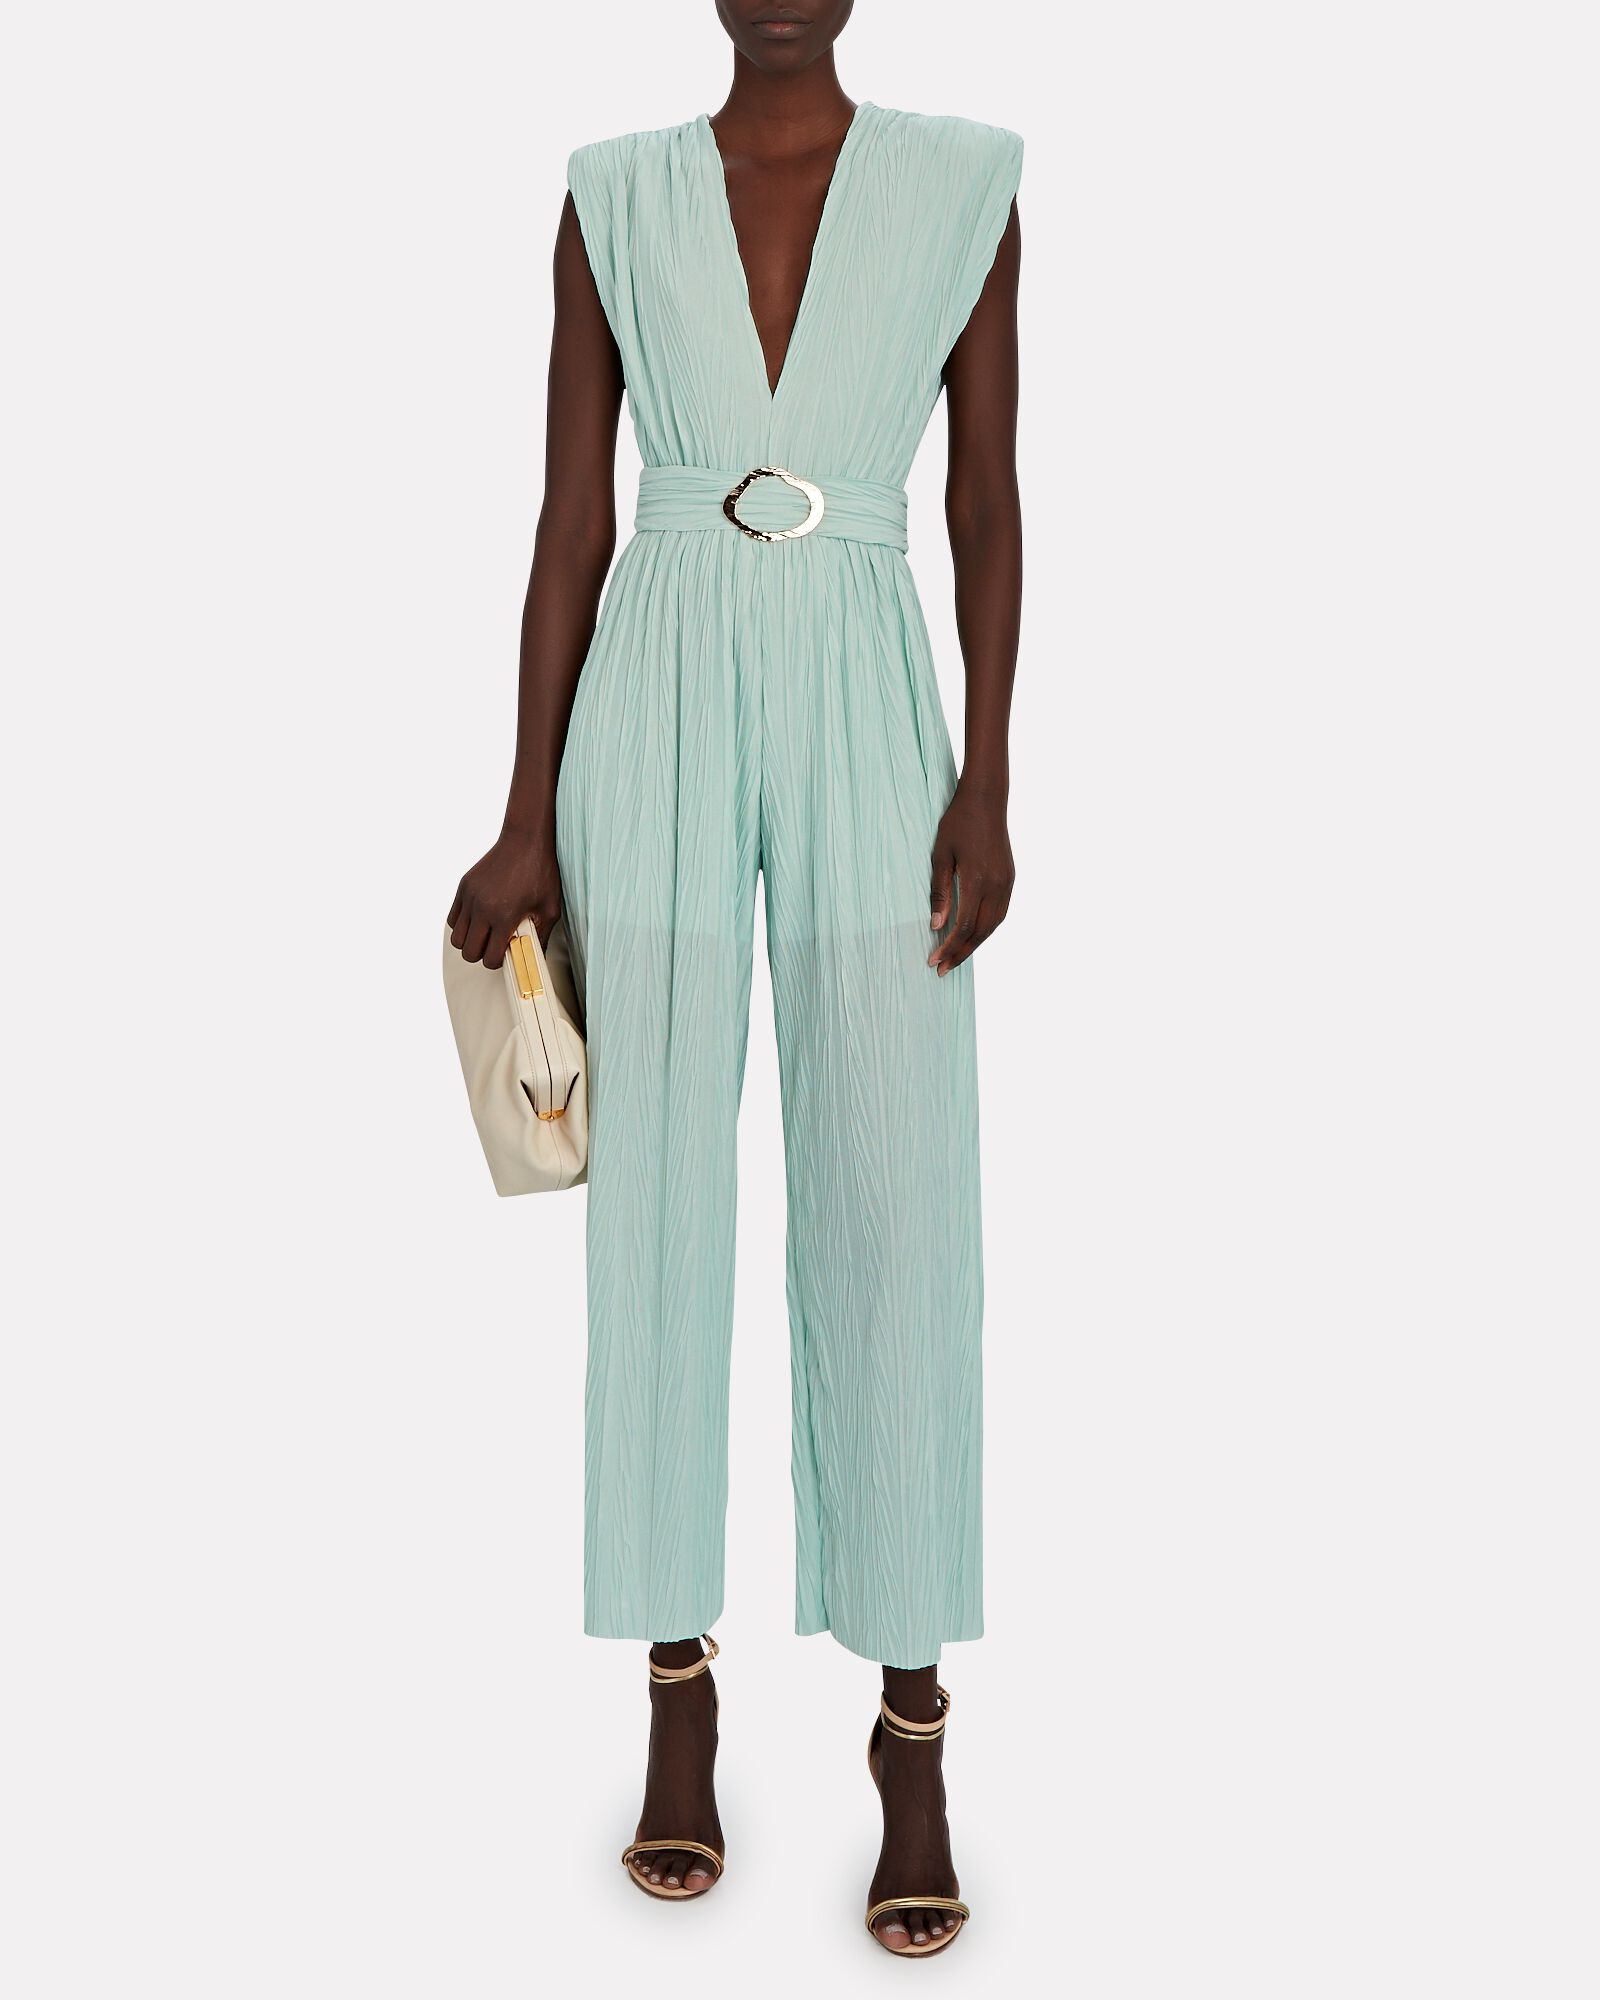 Galliano Belted Sleeveless Jumpsuit, GREY-LT, hi-res